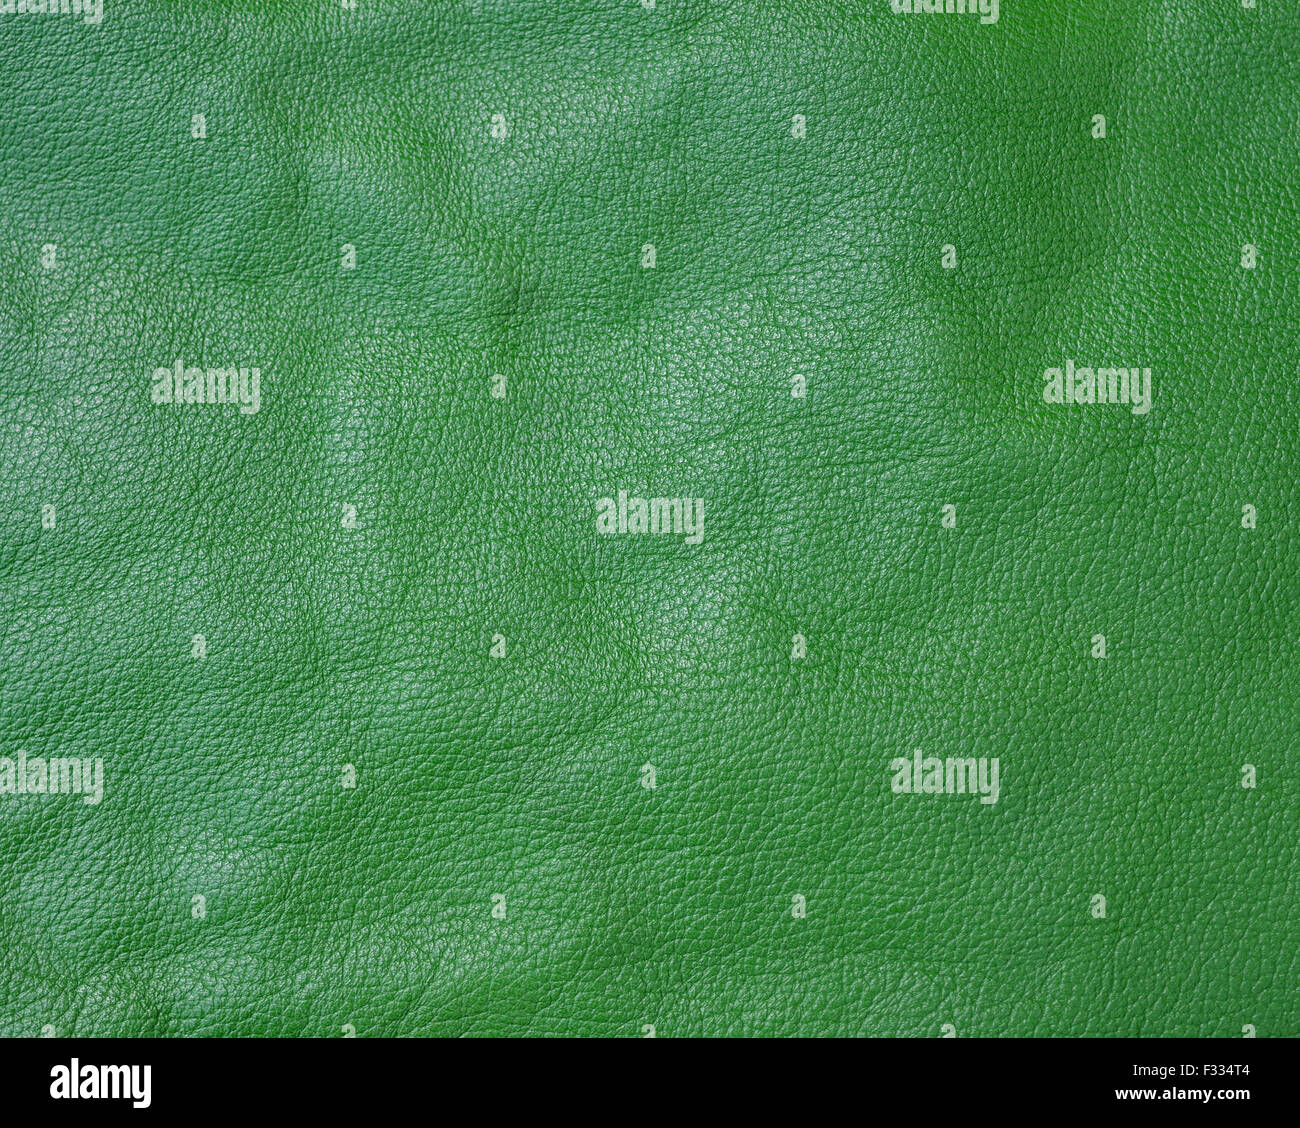 Green genuine leather background - Stock Image